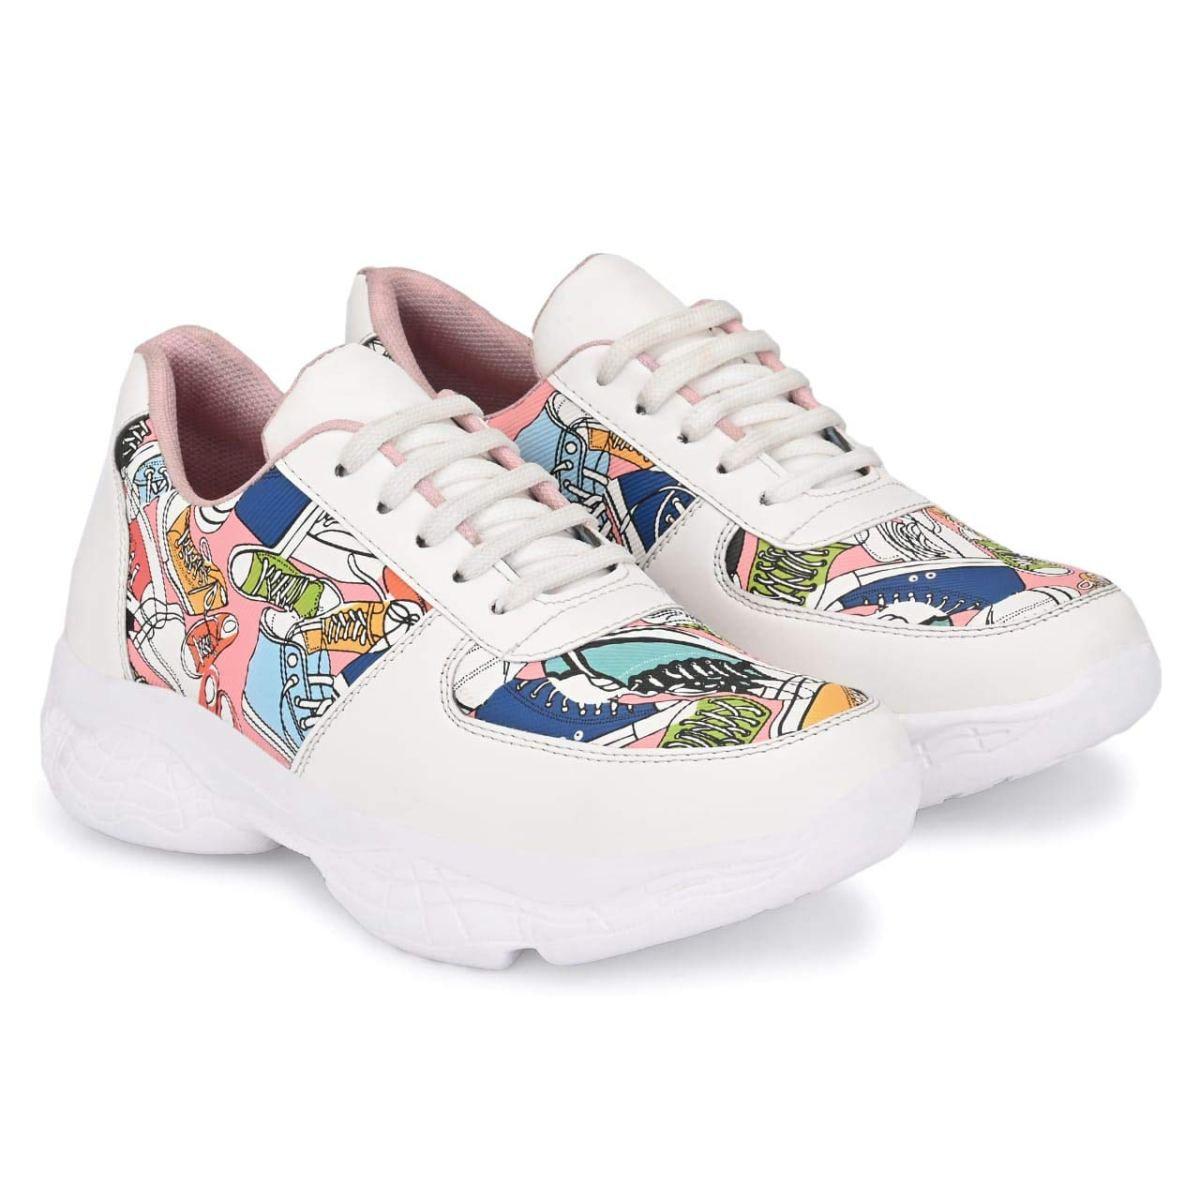 bentli Latest Collection, Comfortable & Fashionable Sneakers Shoes for Women's and Girl's